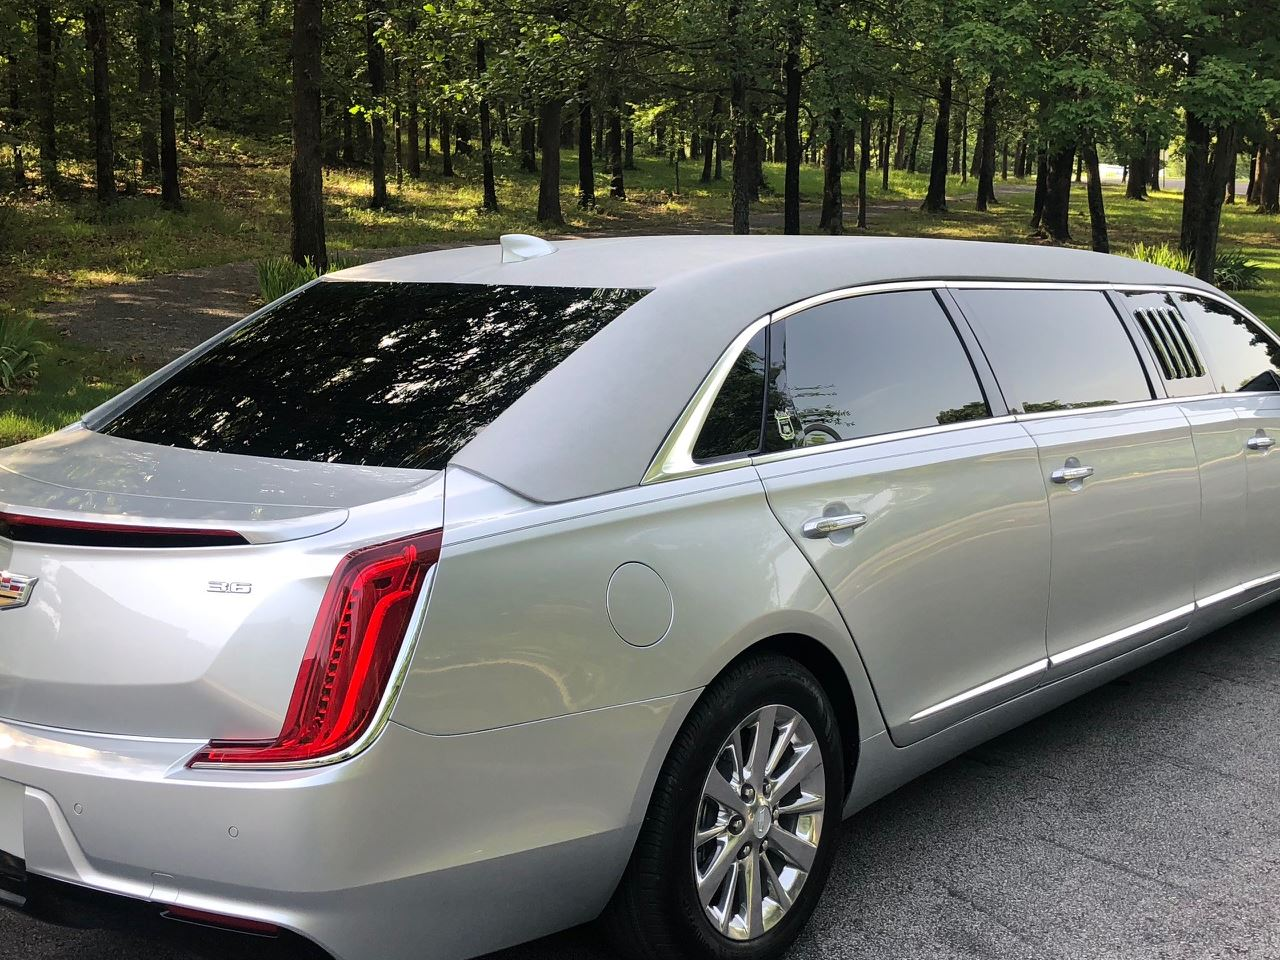 2019 Armbruster Stageway Cadillac 70 Stretch Limousine 5